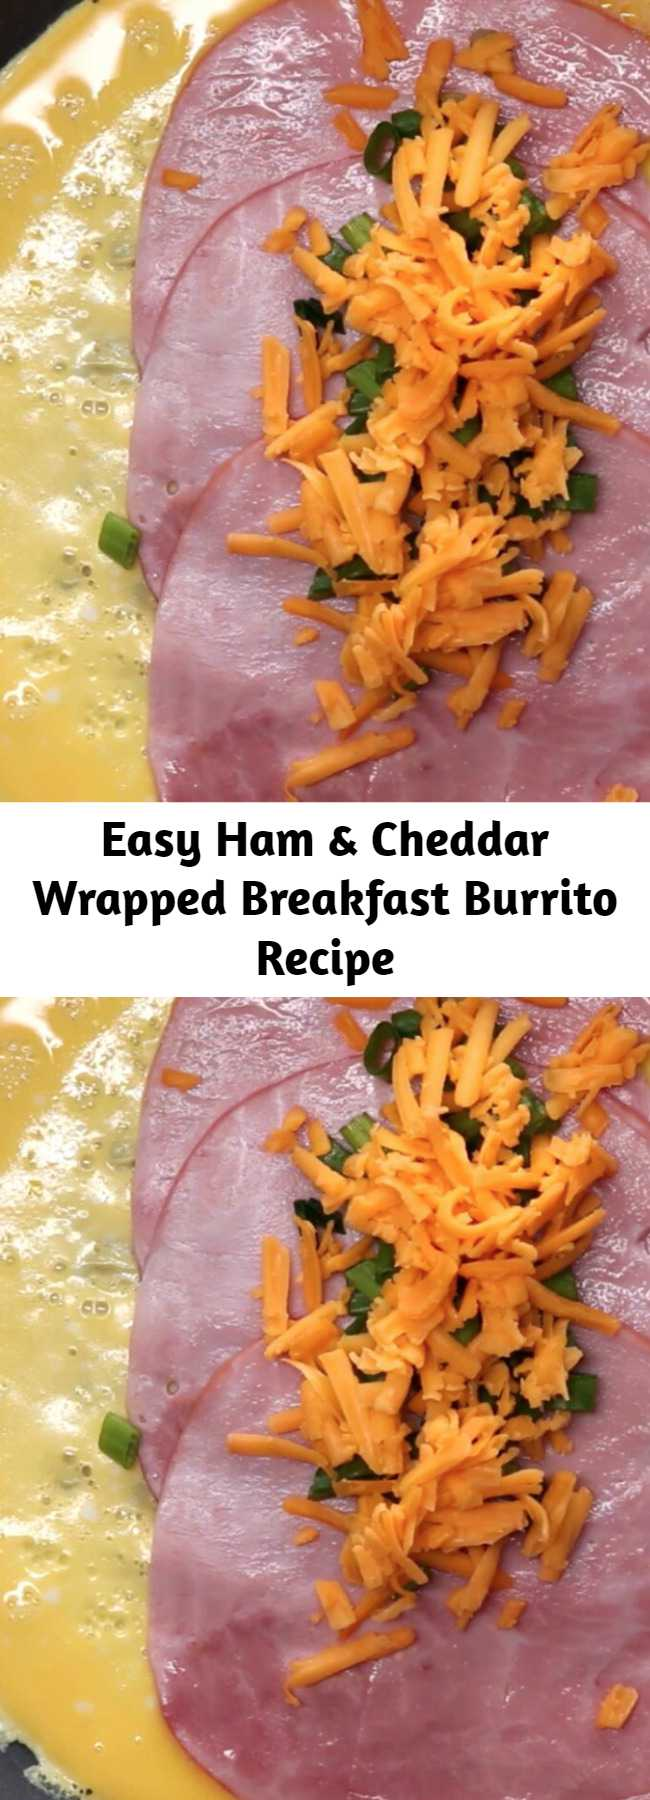 Easy Ham & Cheddar Wrapped Breakfast Burrito Recipe - You can make these freezable breakfast burritos in minutes. A delicious breakfast to go.